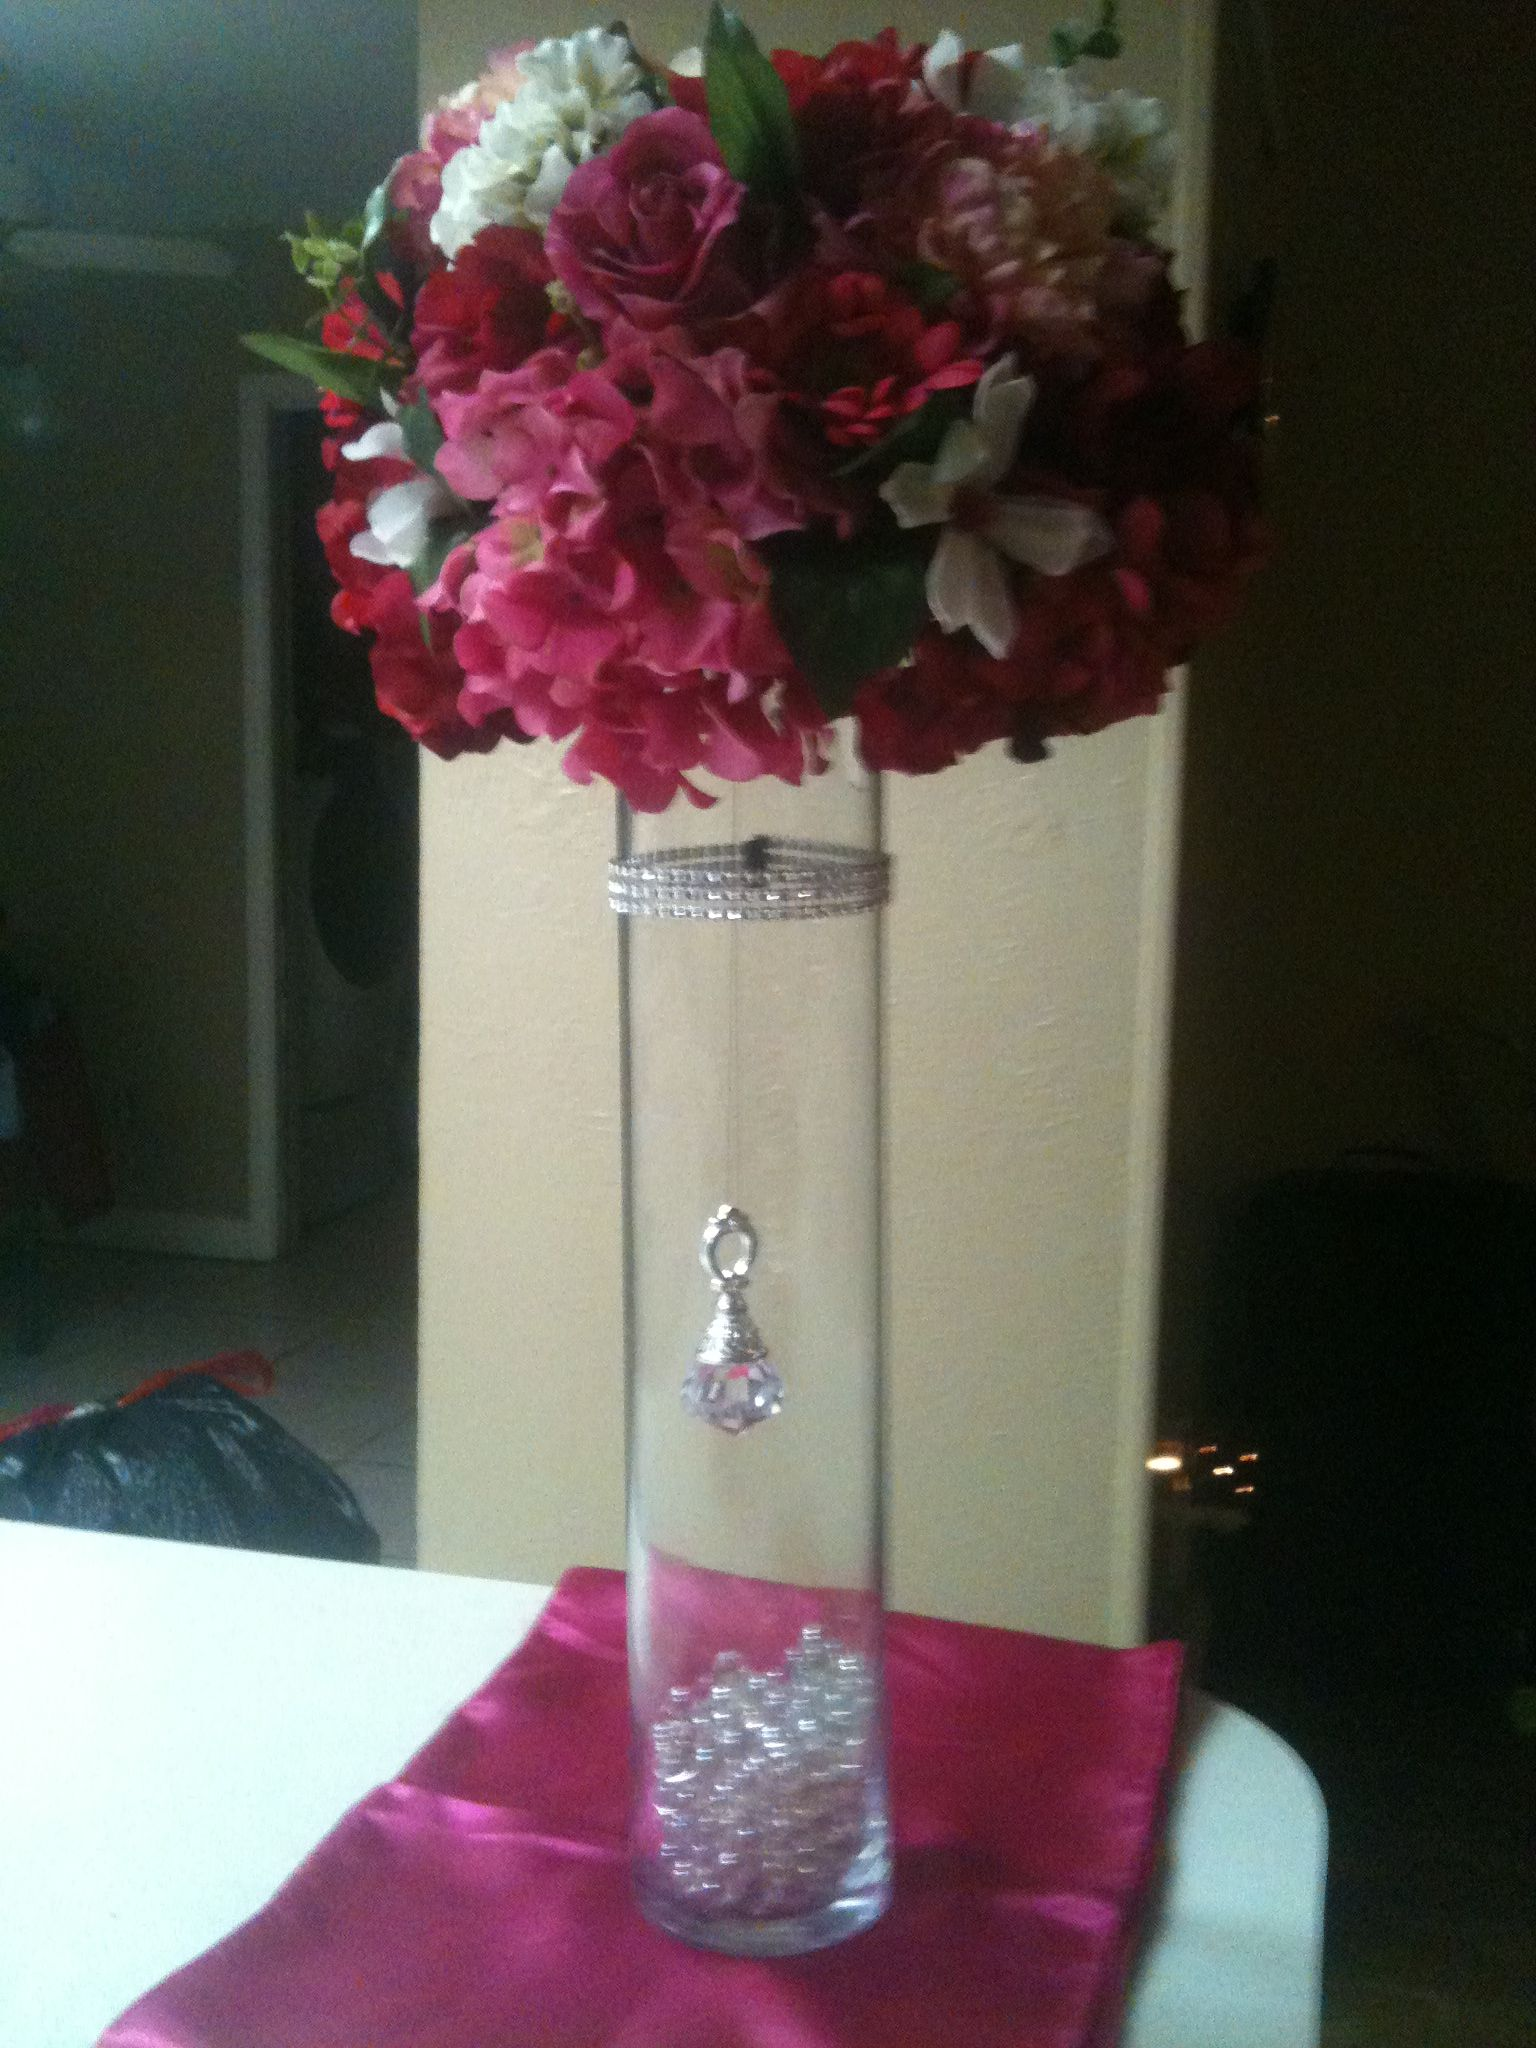 Hot pink roses, hydrangeas and other white flowers with a crystal (rhinestone) band and hanging crystal. May use colored water (pink?)